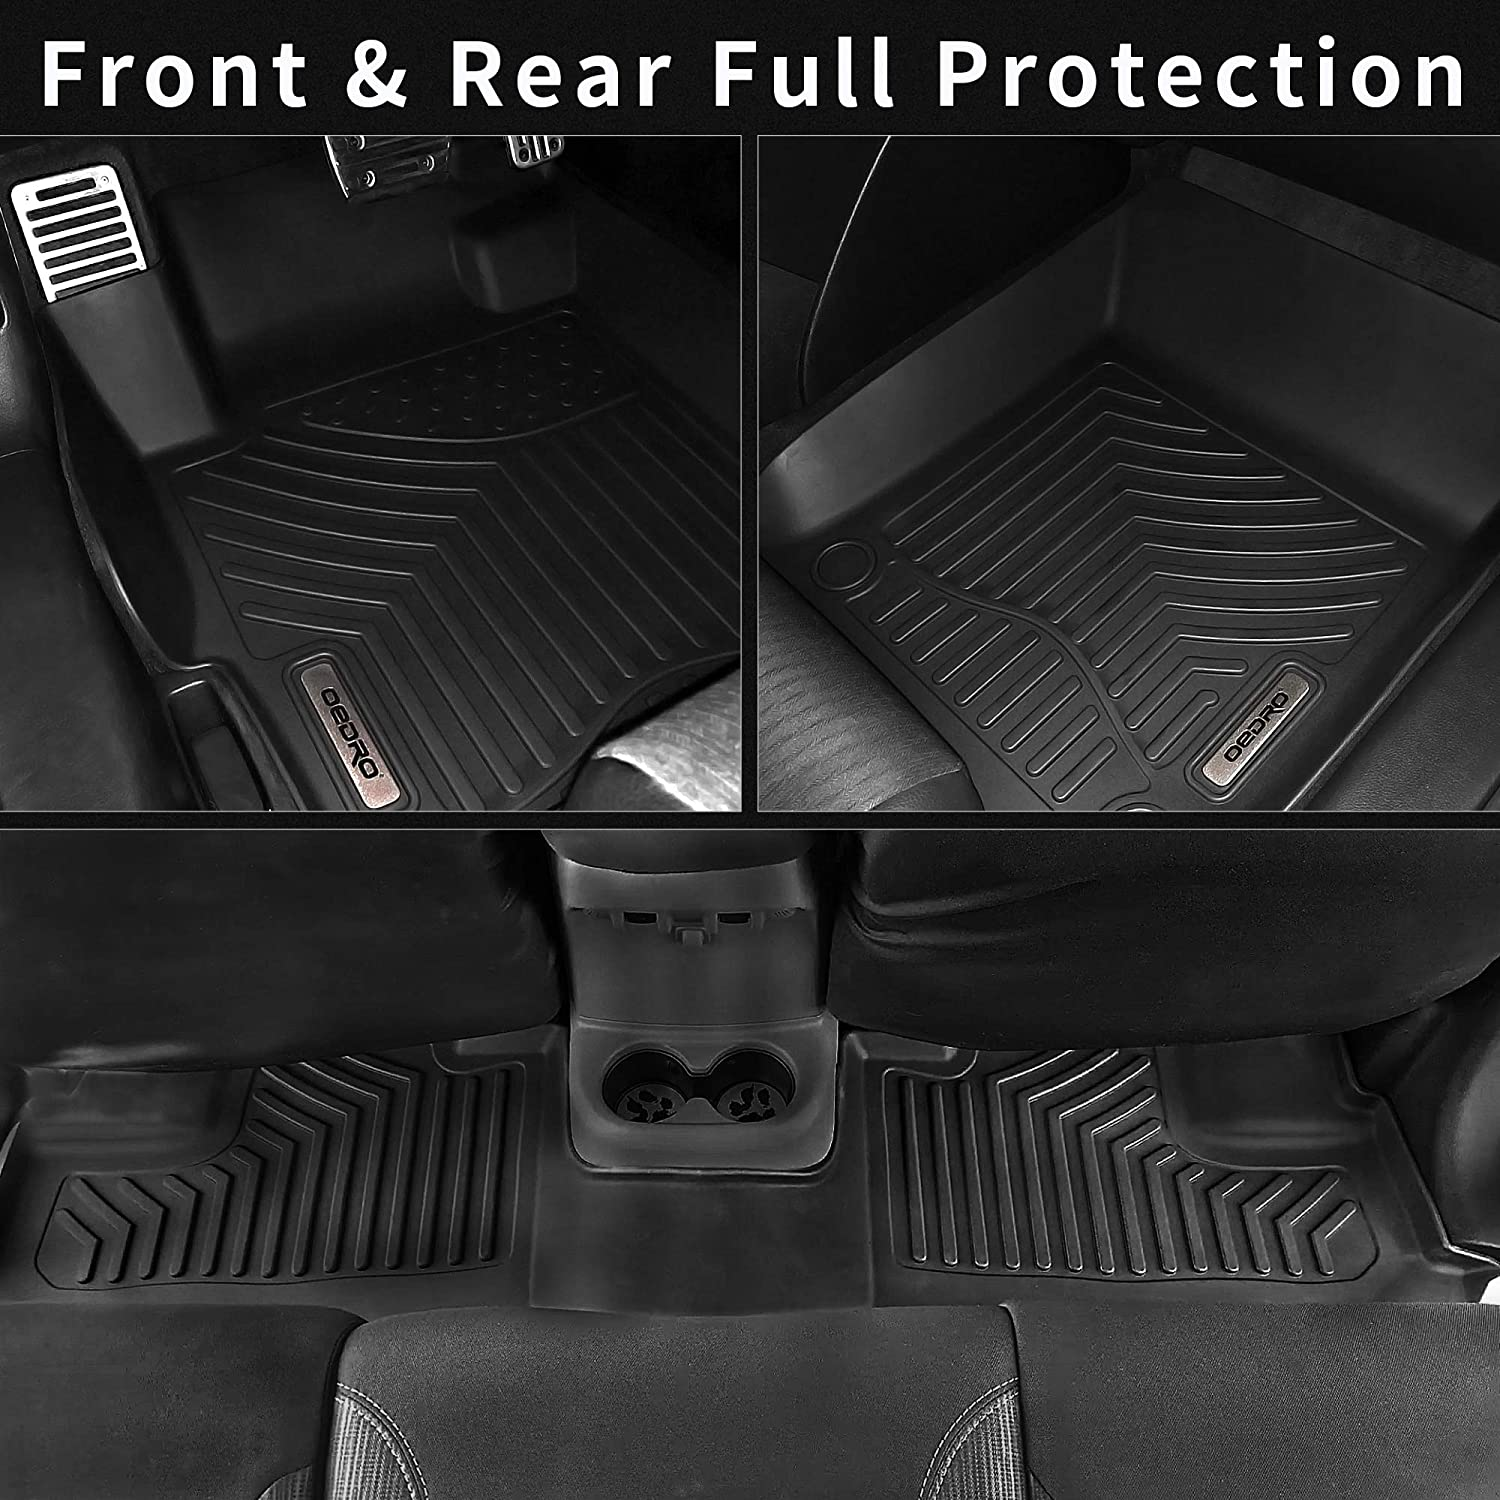 Custom Fit Front /& 2nd Seat 2 Row Liner Set Black TPE All-Weather Guard oEdRo Floor Mats Compatible with 2013-2020 Nissan Pathfinder